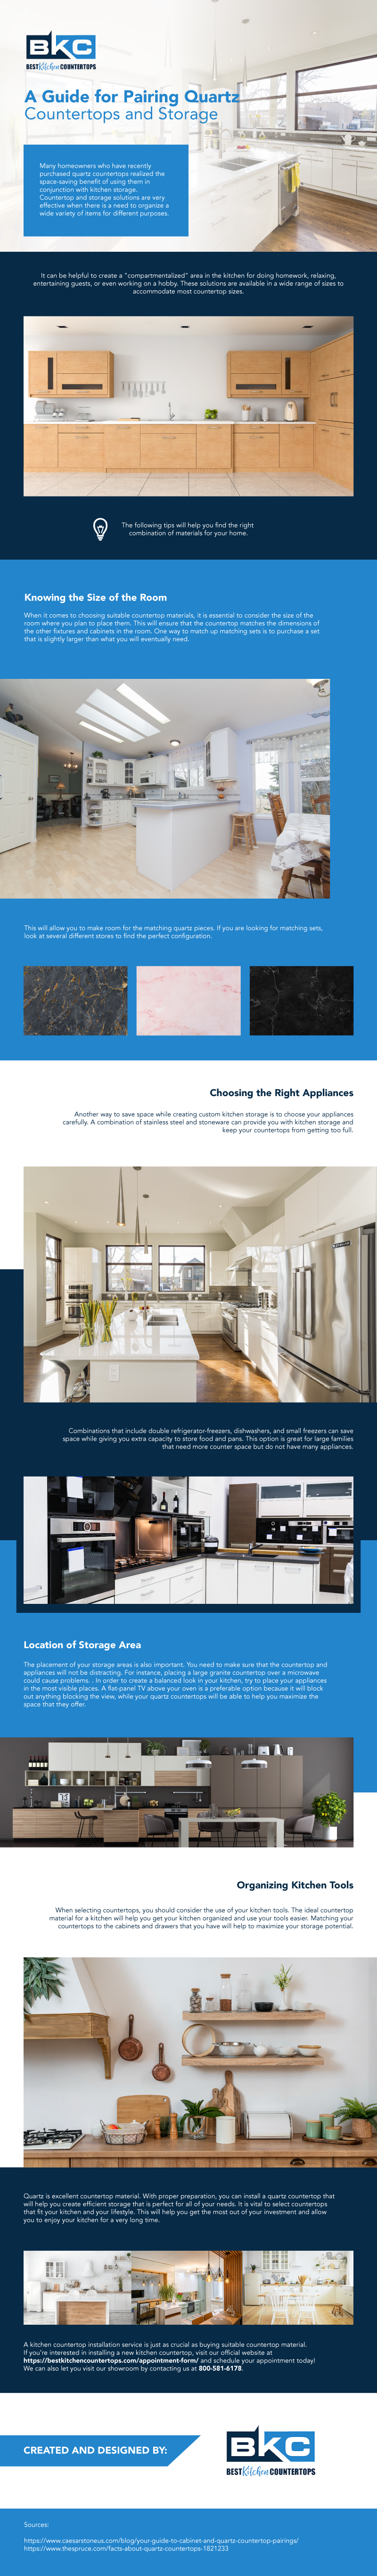 A Guide for Pairing Quartz Countertops and Storage01